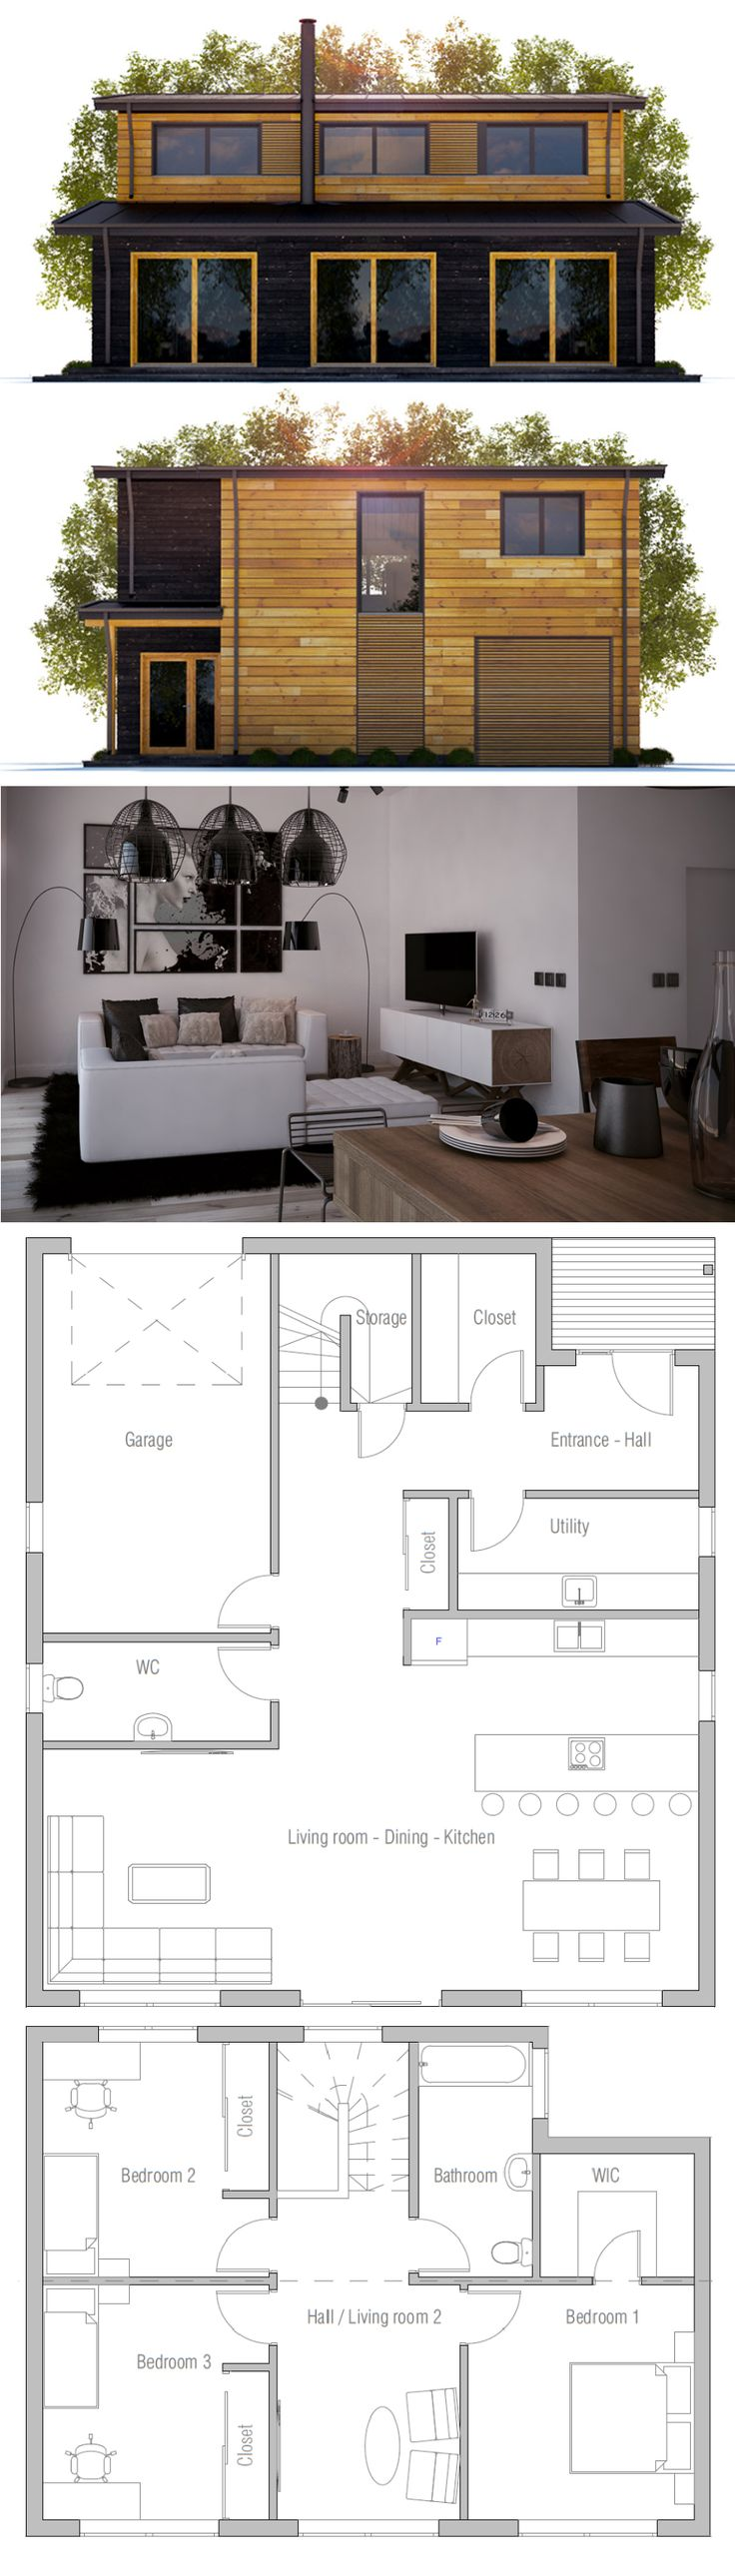 Home plans affordable house plans and small home plans on for Small affordable house plans